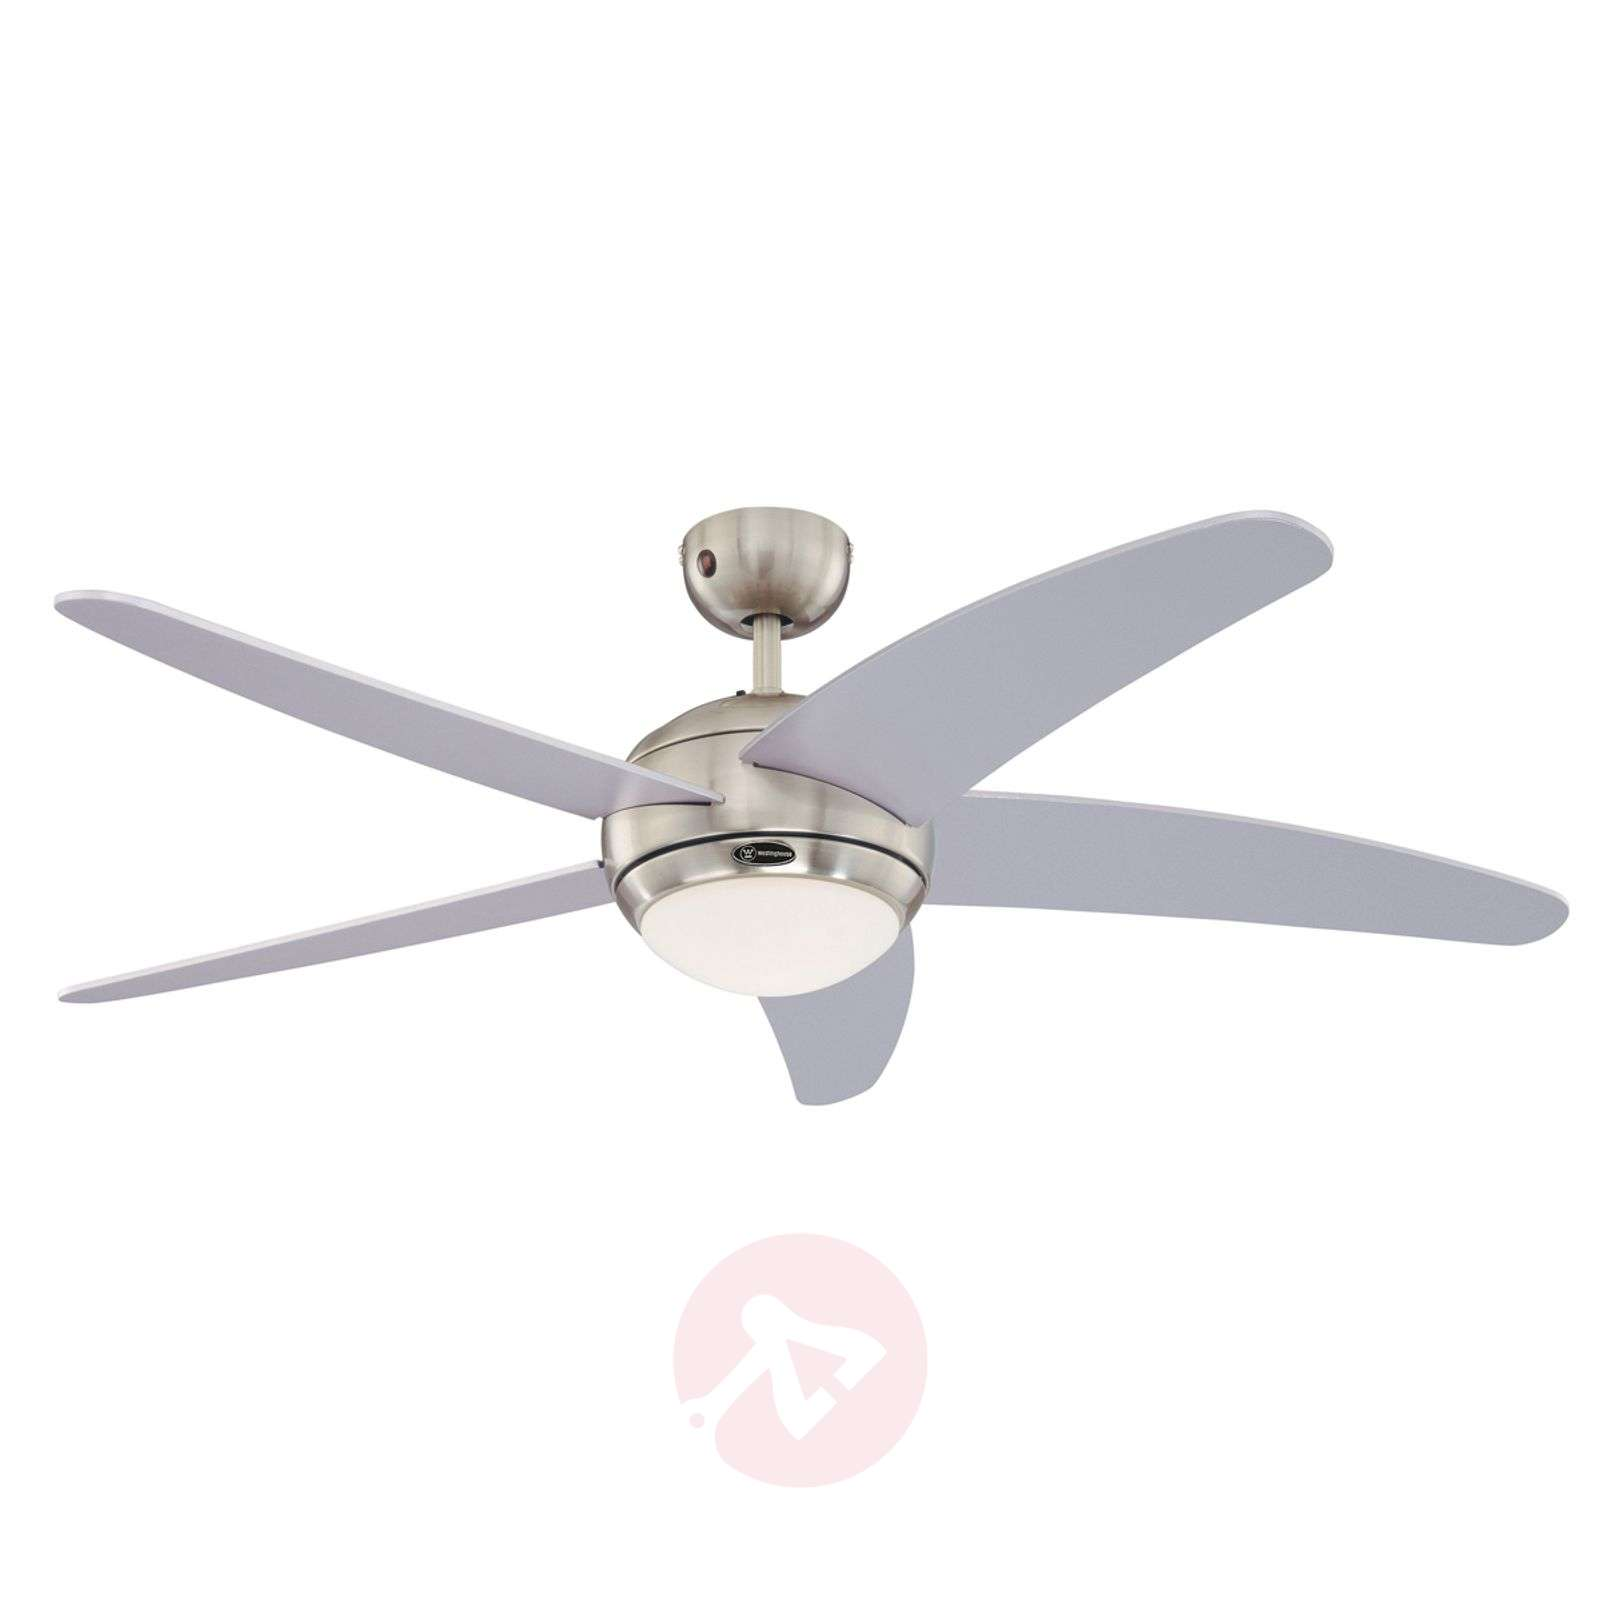 Bedan ceiling fan in silver with light-9602244-09